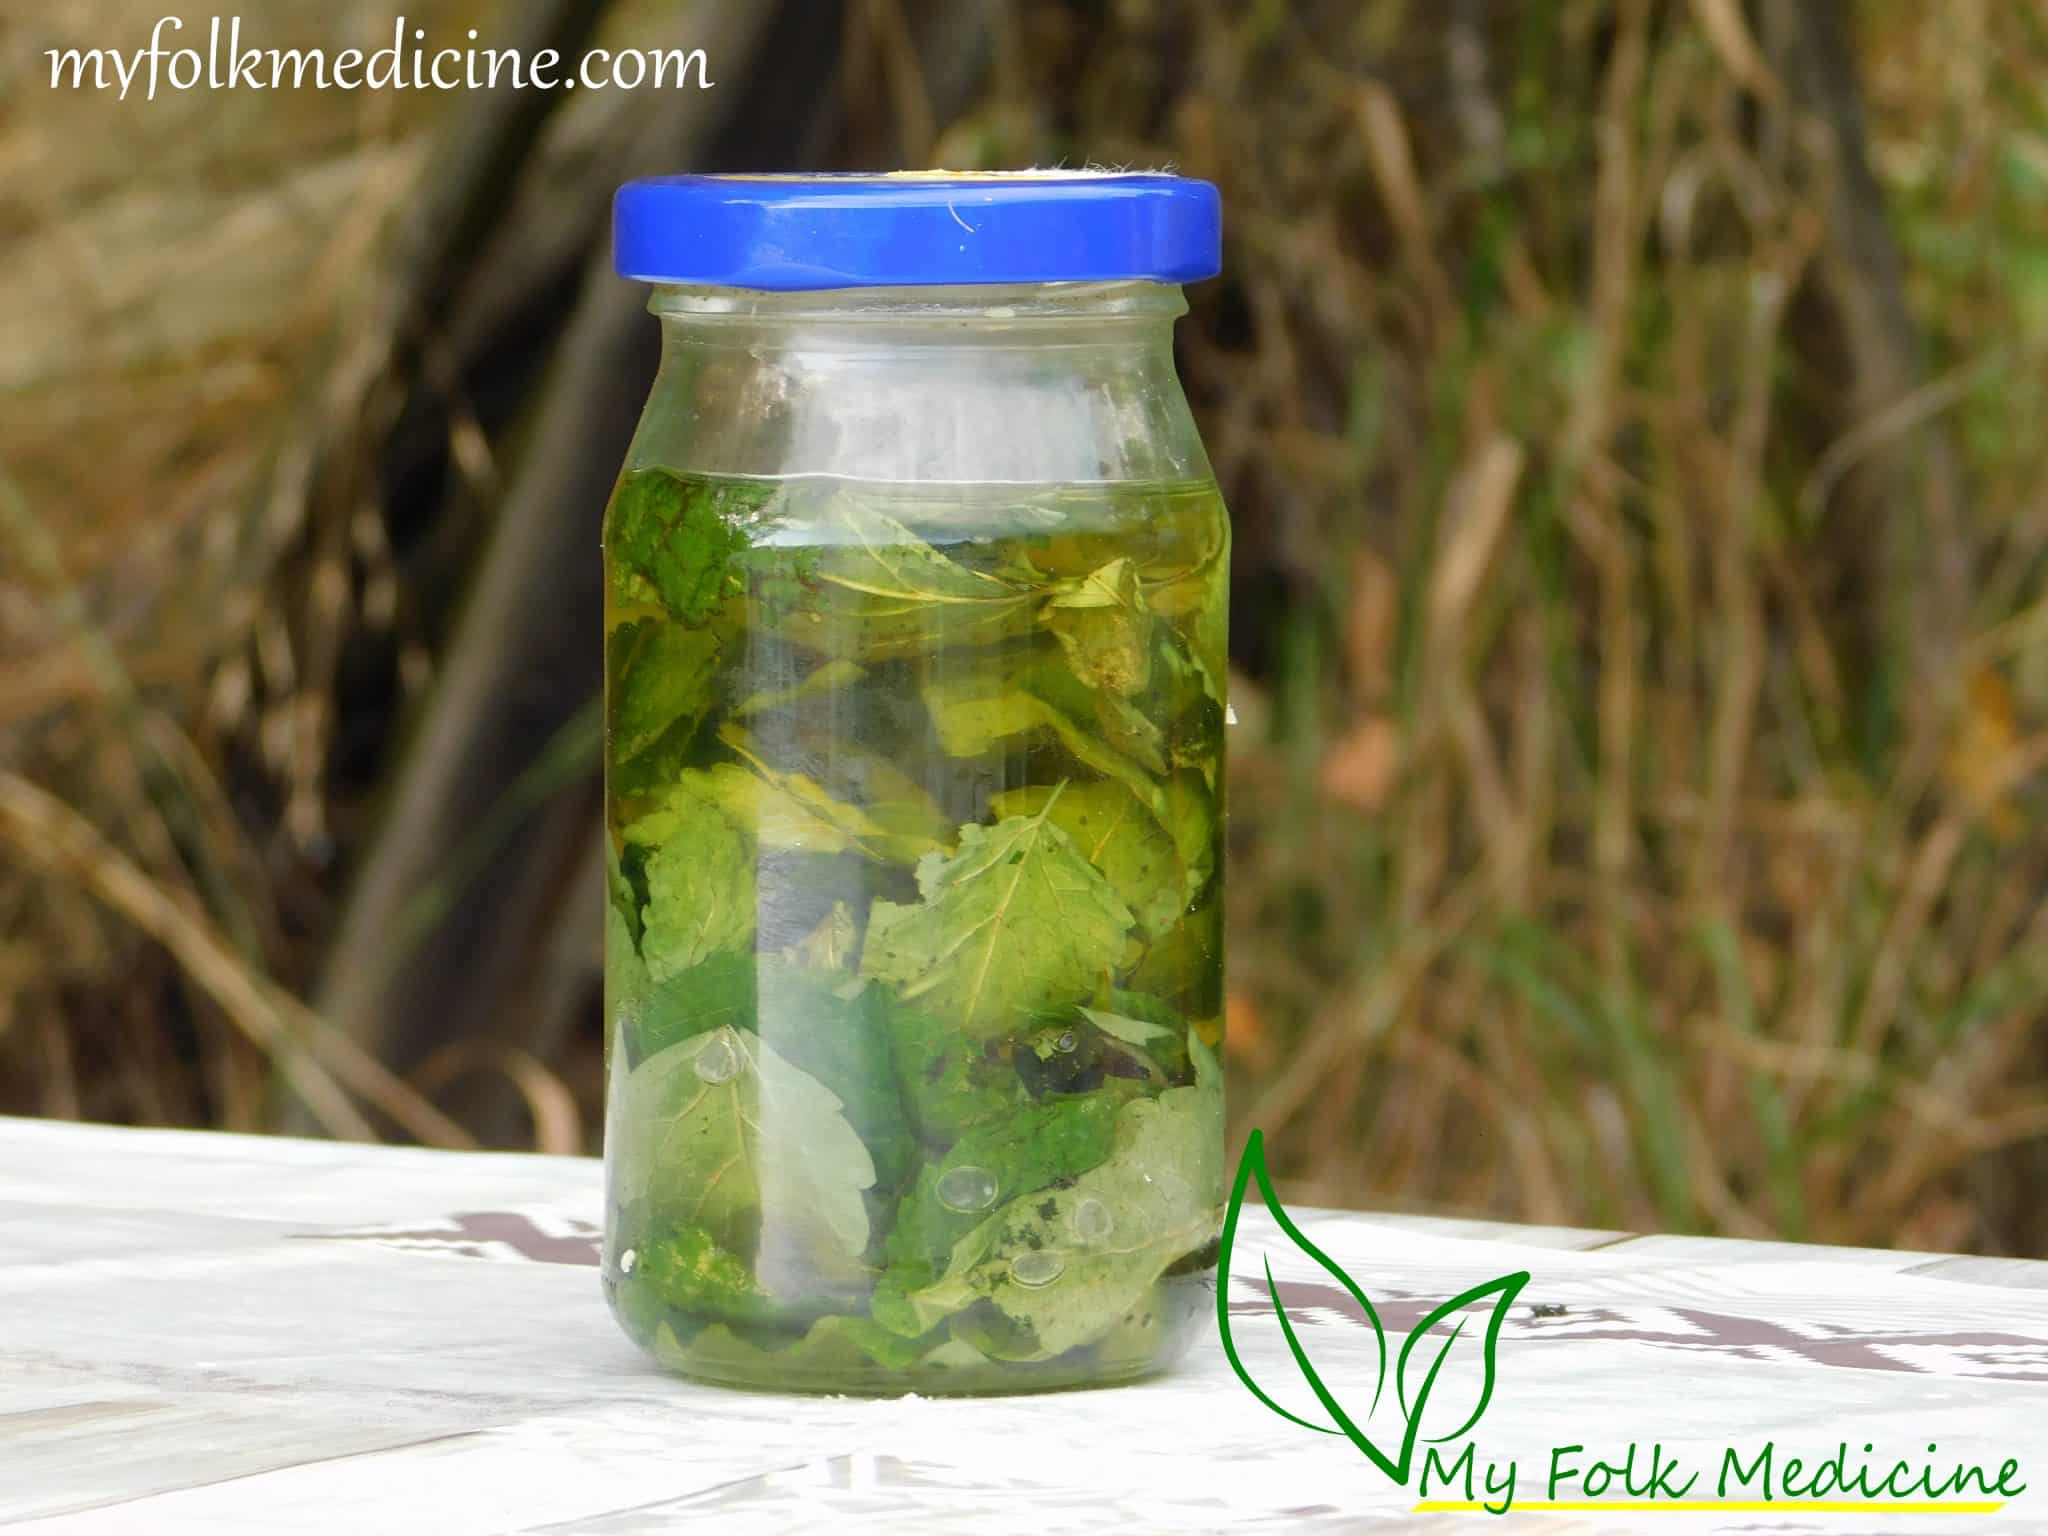 Lemon Balm Infused Oil Recipe